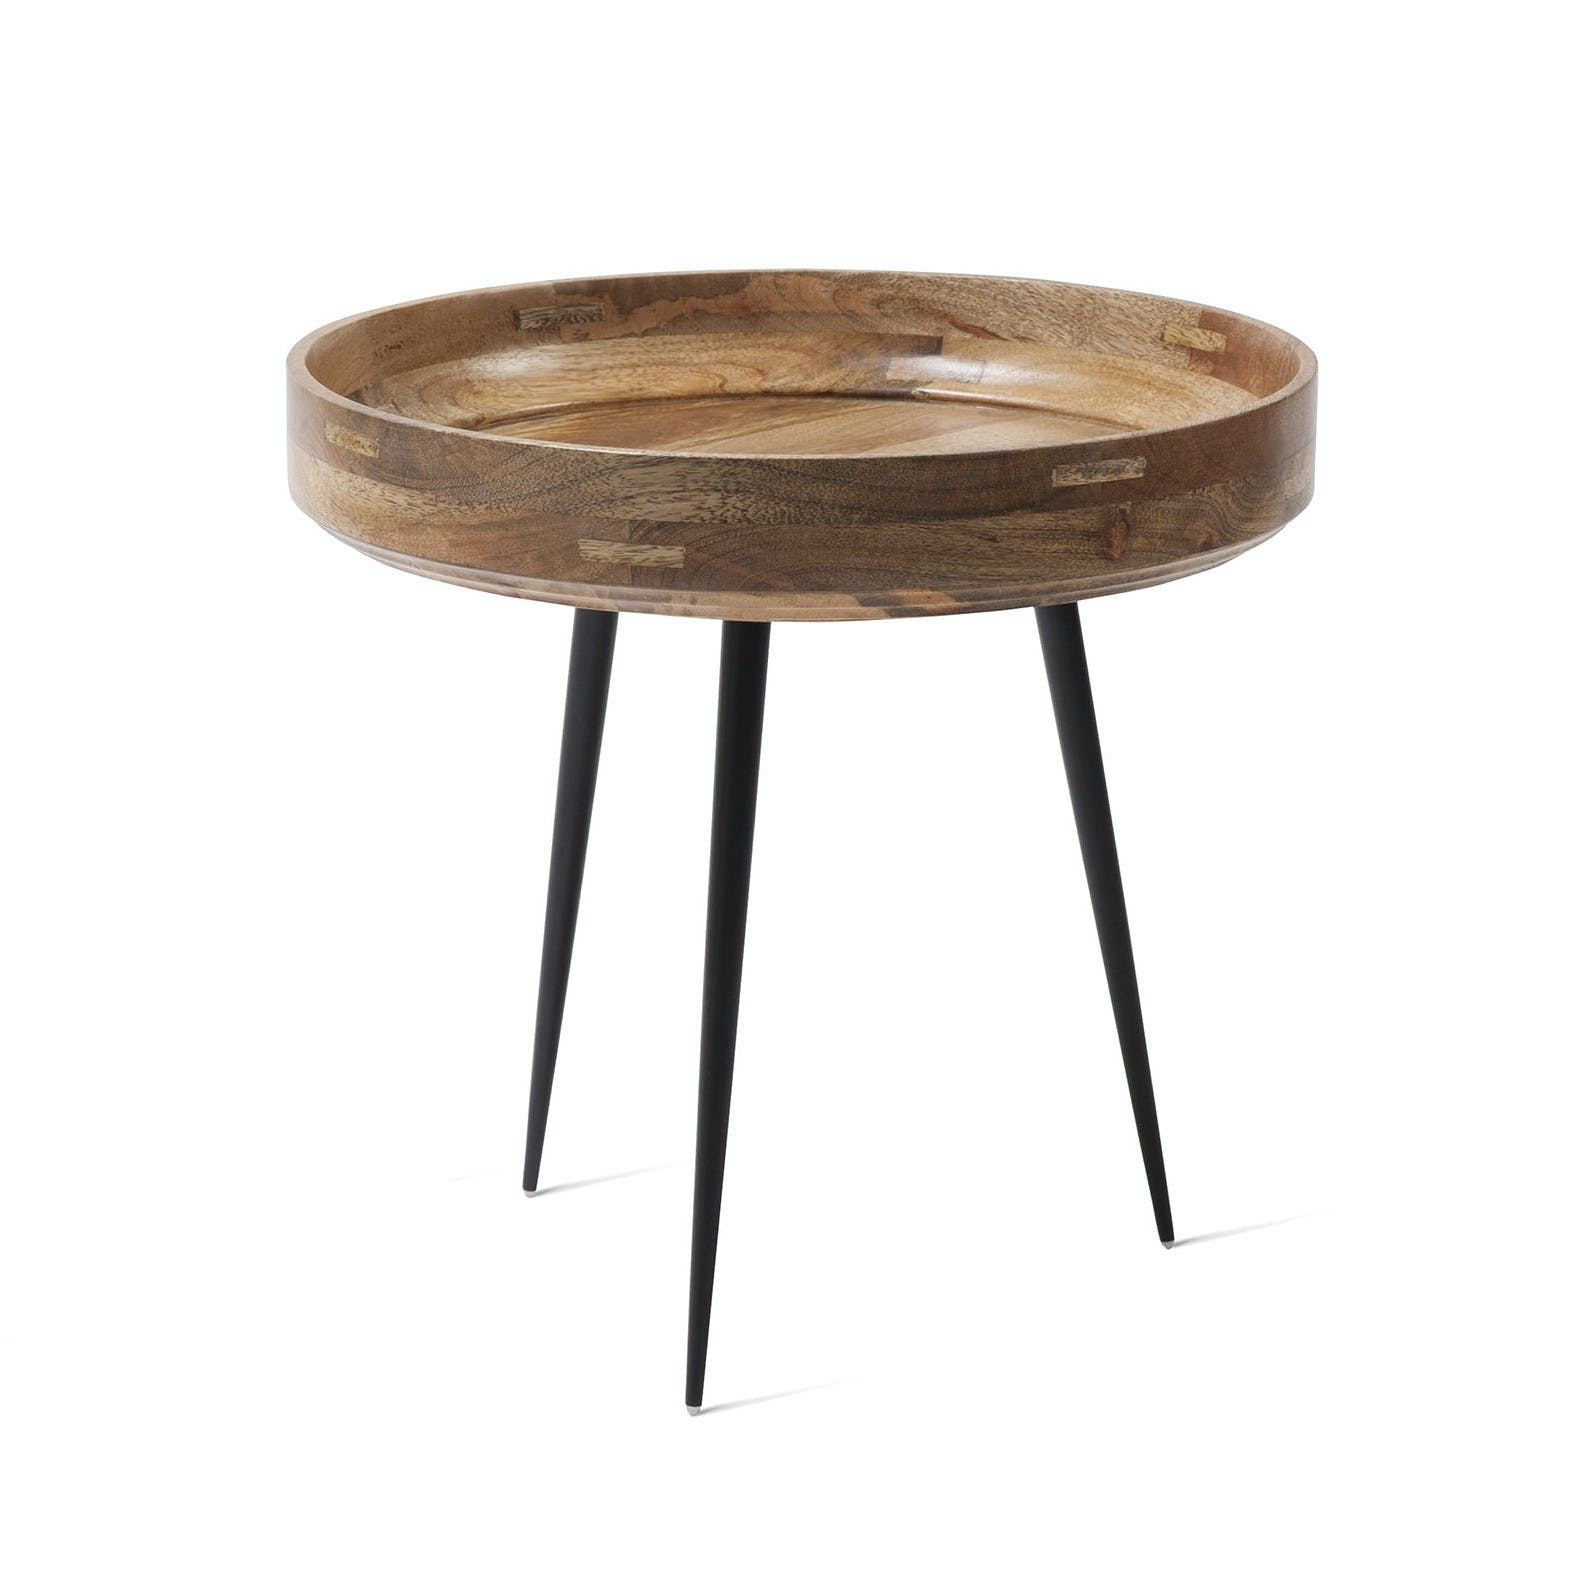 Mater Natural Small Bowl Table Haute Living